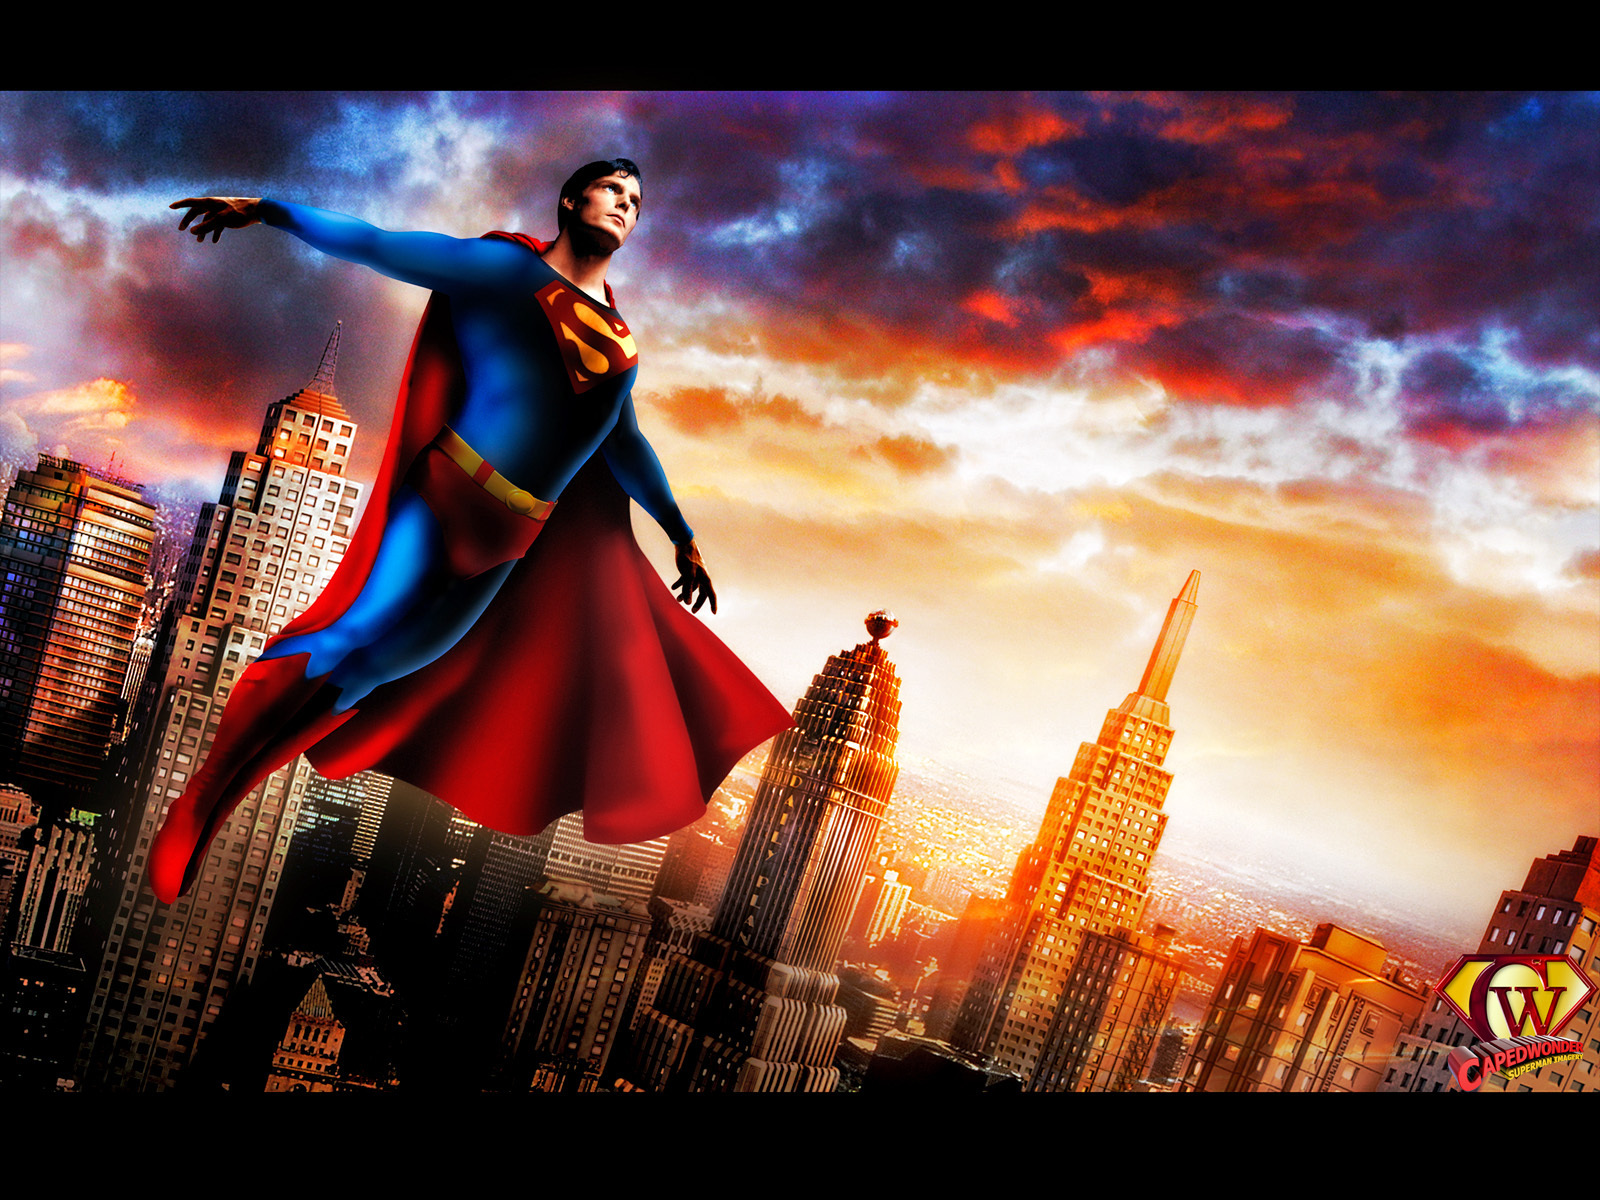 Superman The Movie images Superman HD wallpaper and background 1600x1200